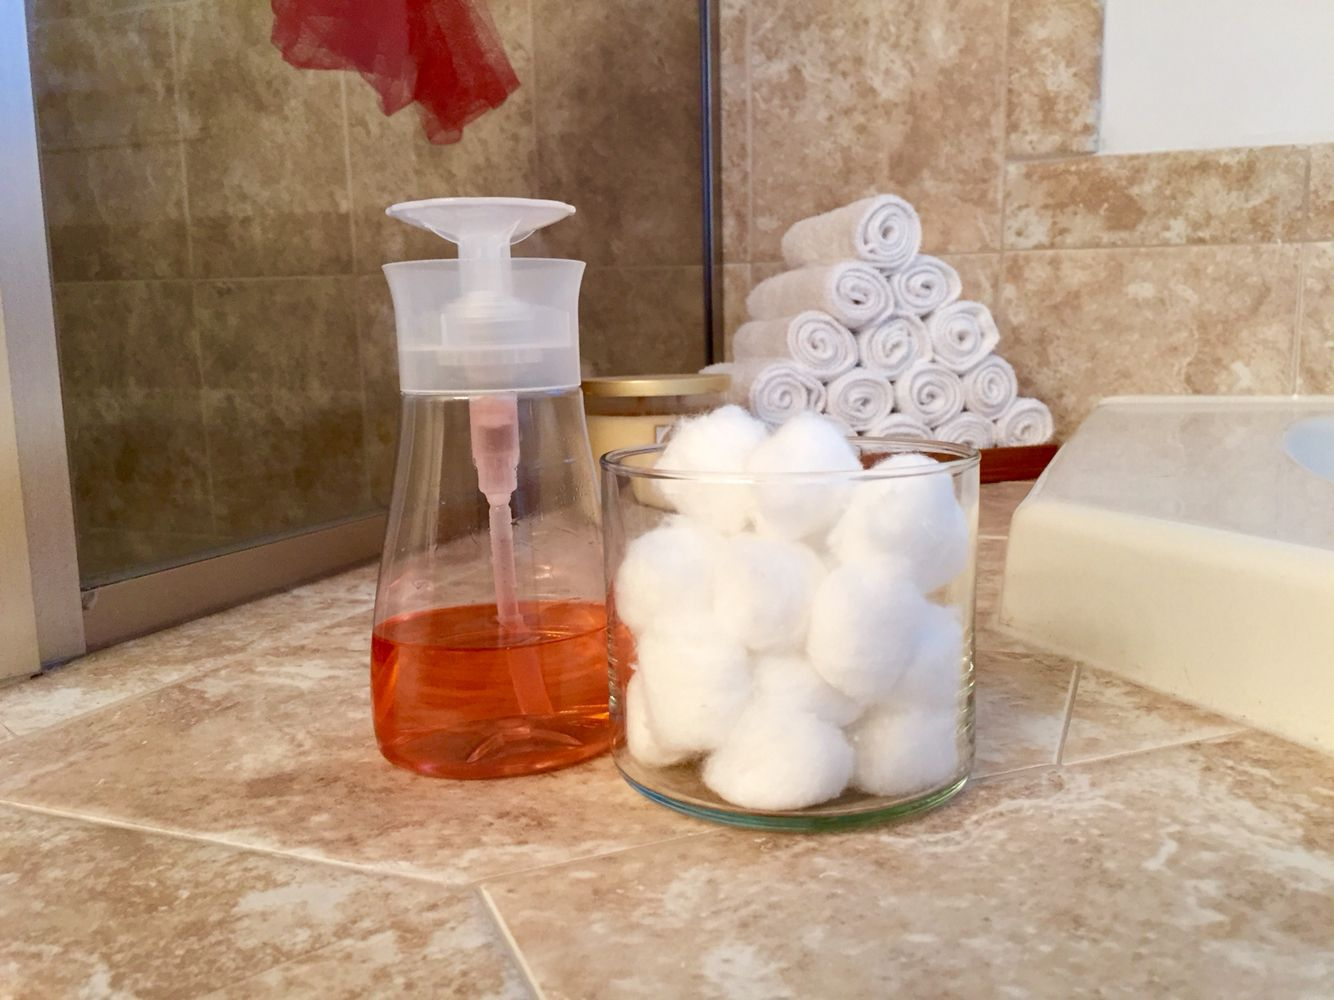 reusing a Windex Touch-Up Cleaner bottle for nail polish remover and a Bath and Body Works candle jar for cotton balls. reduce, reuse, recycle!